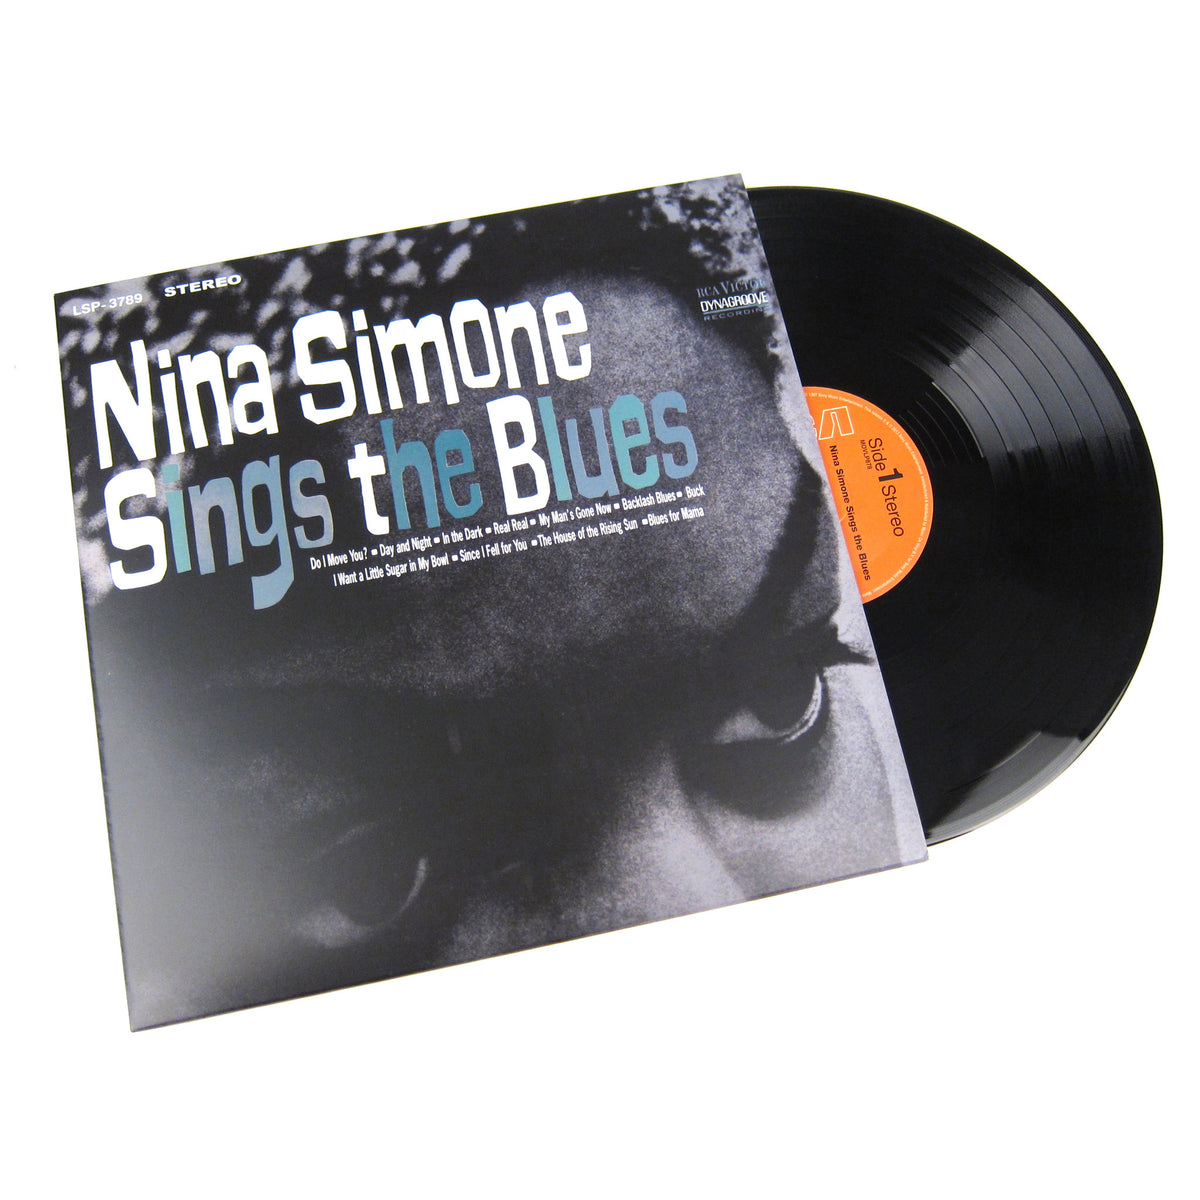 Nina Simone: Nina Simone Sings The Blues (Music On Vinyl 180g) Vinyl LP